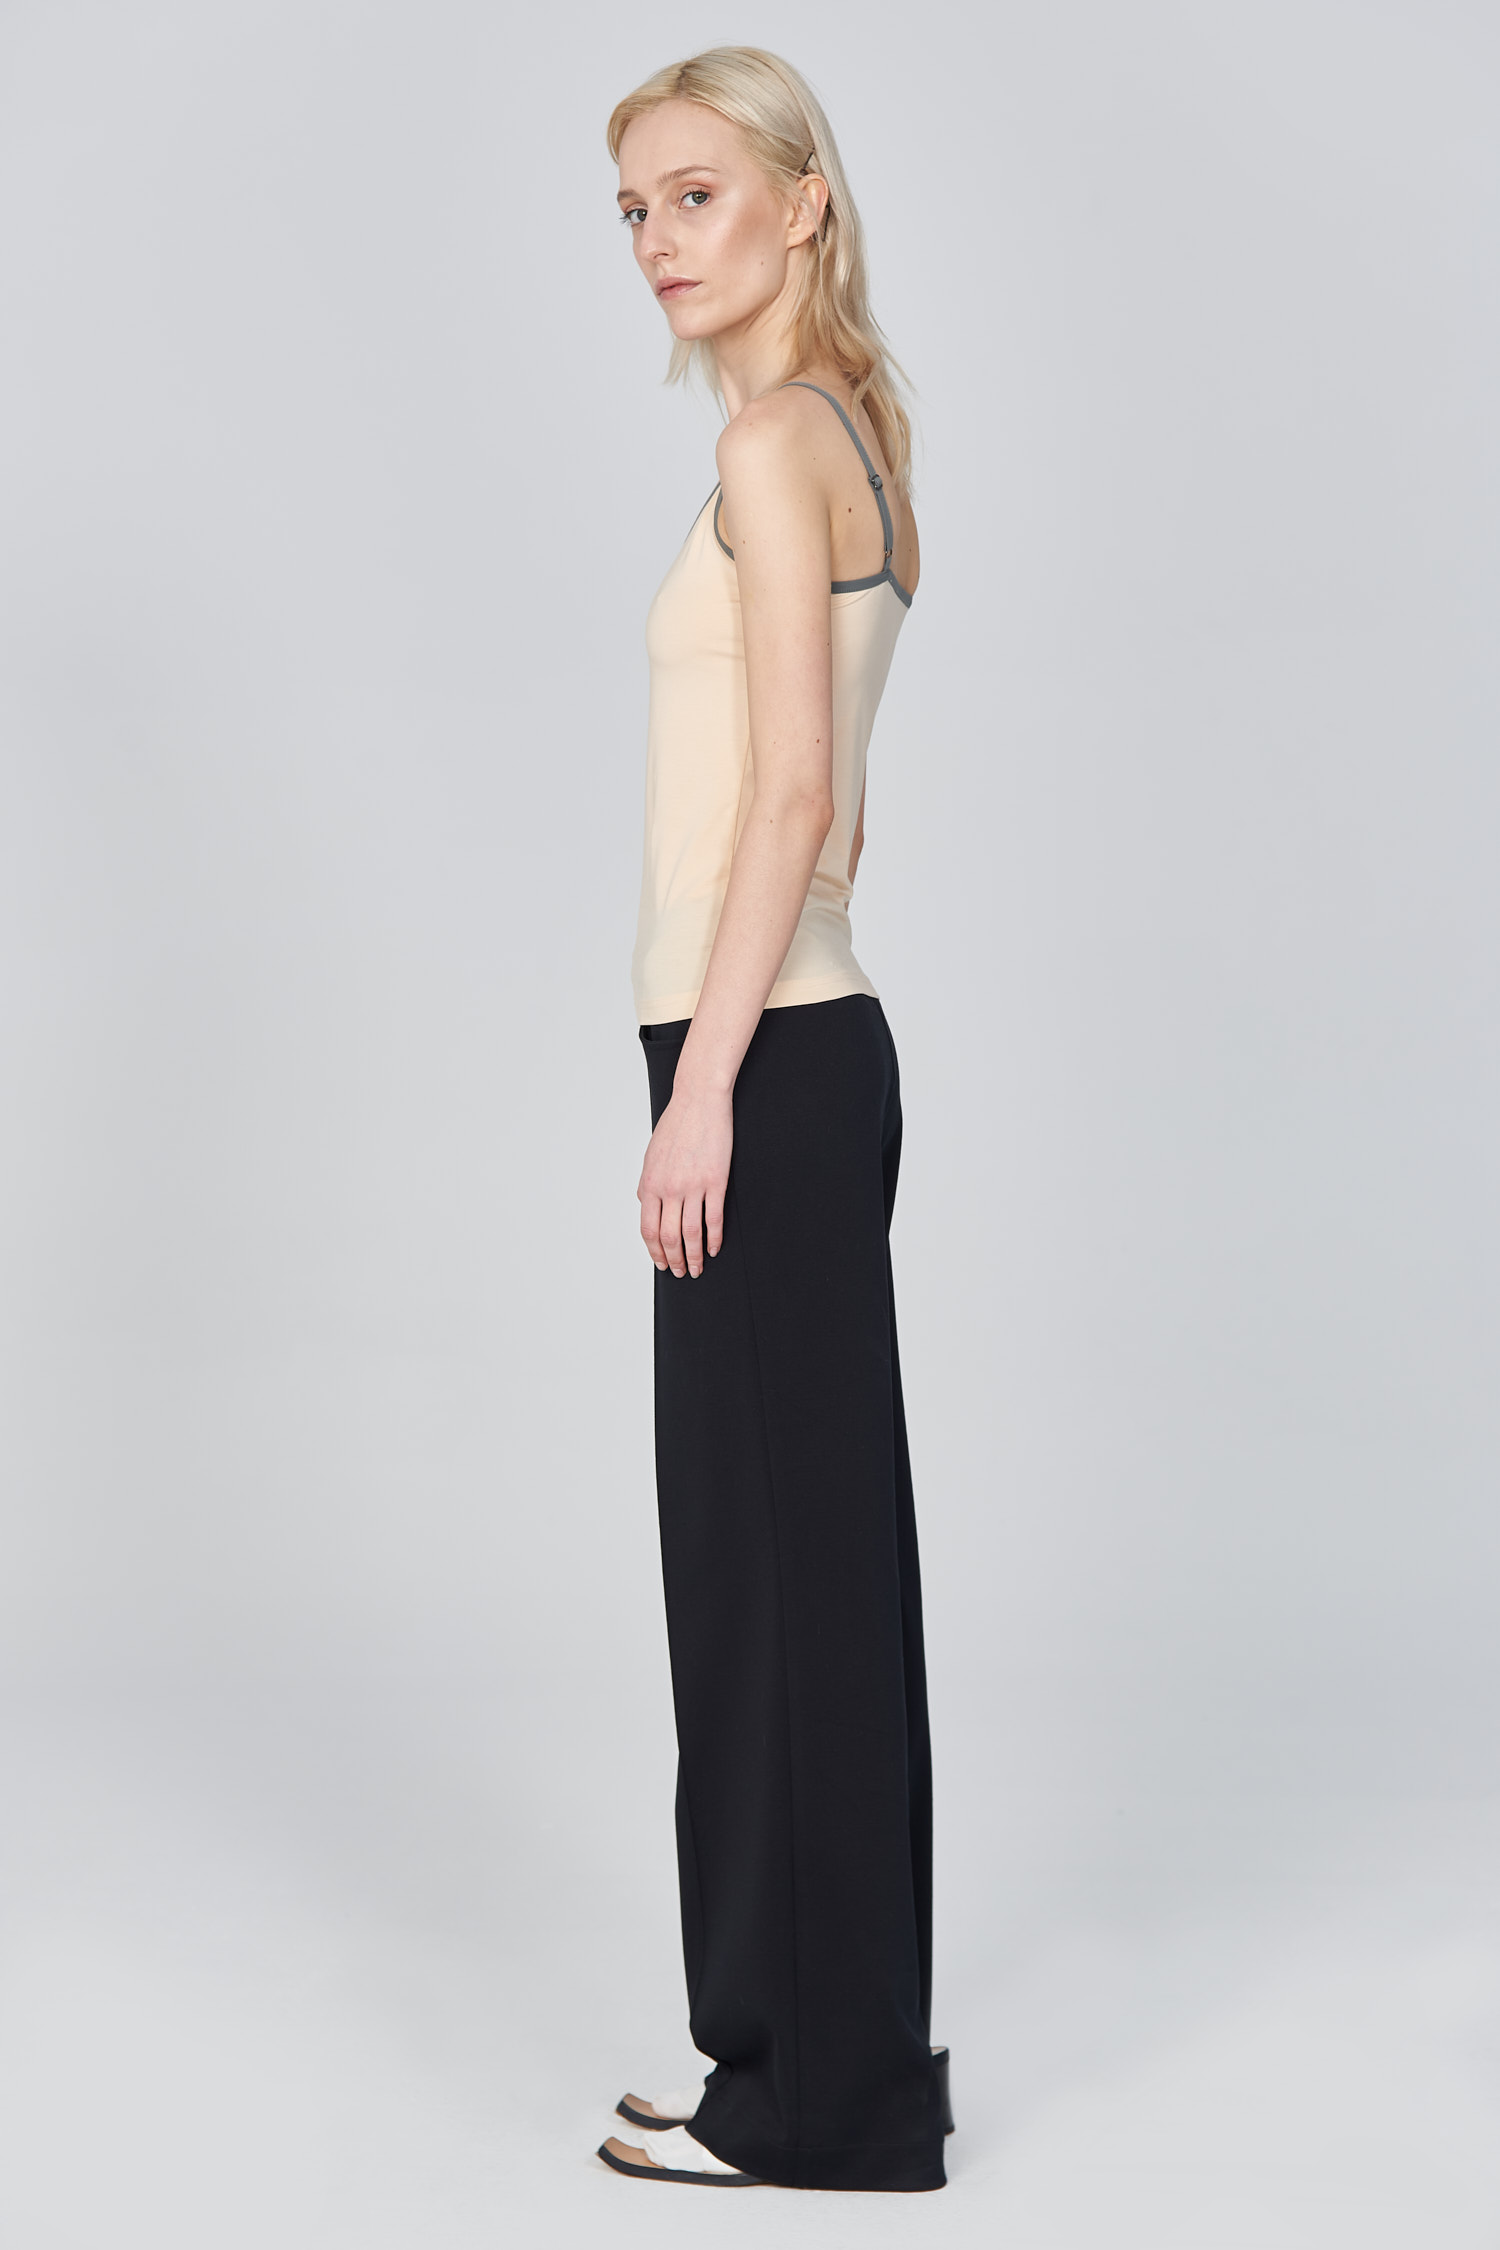 Acephala Ss21 Second Skin Tank Top Side Out